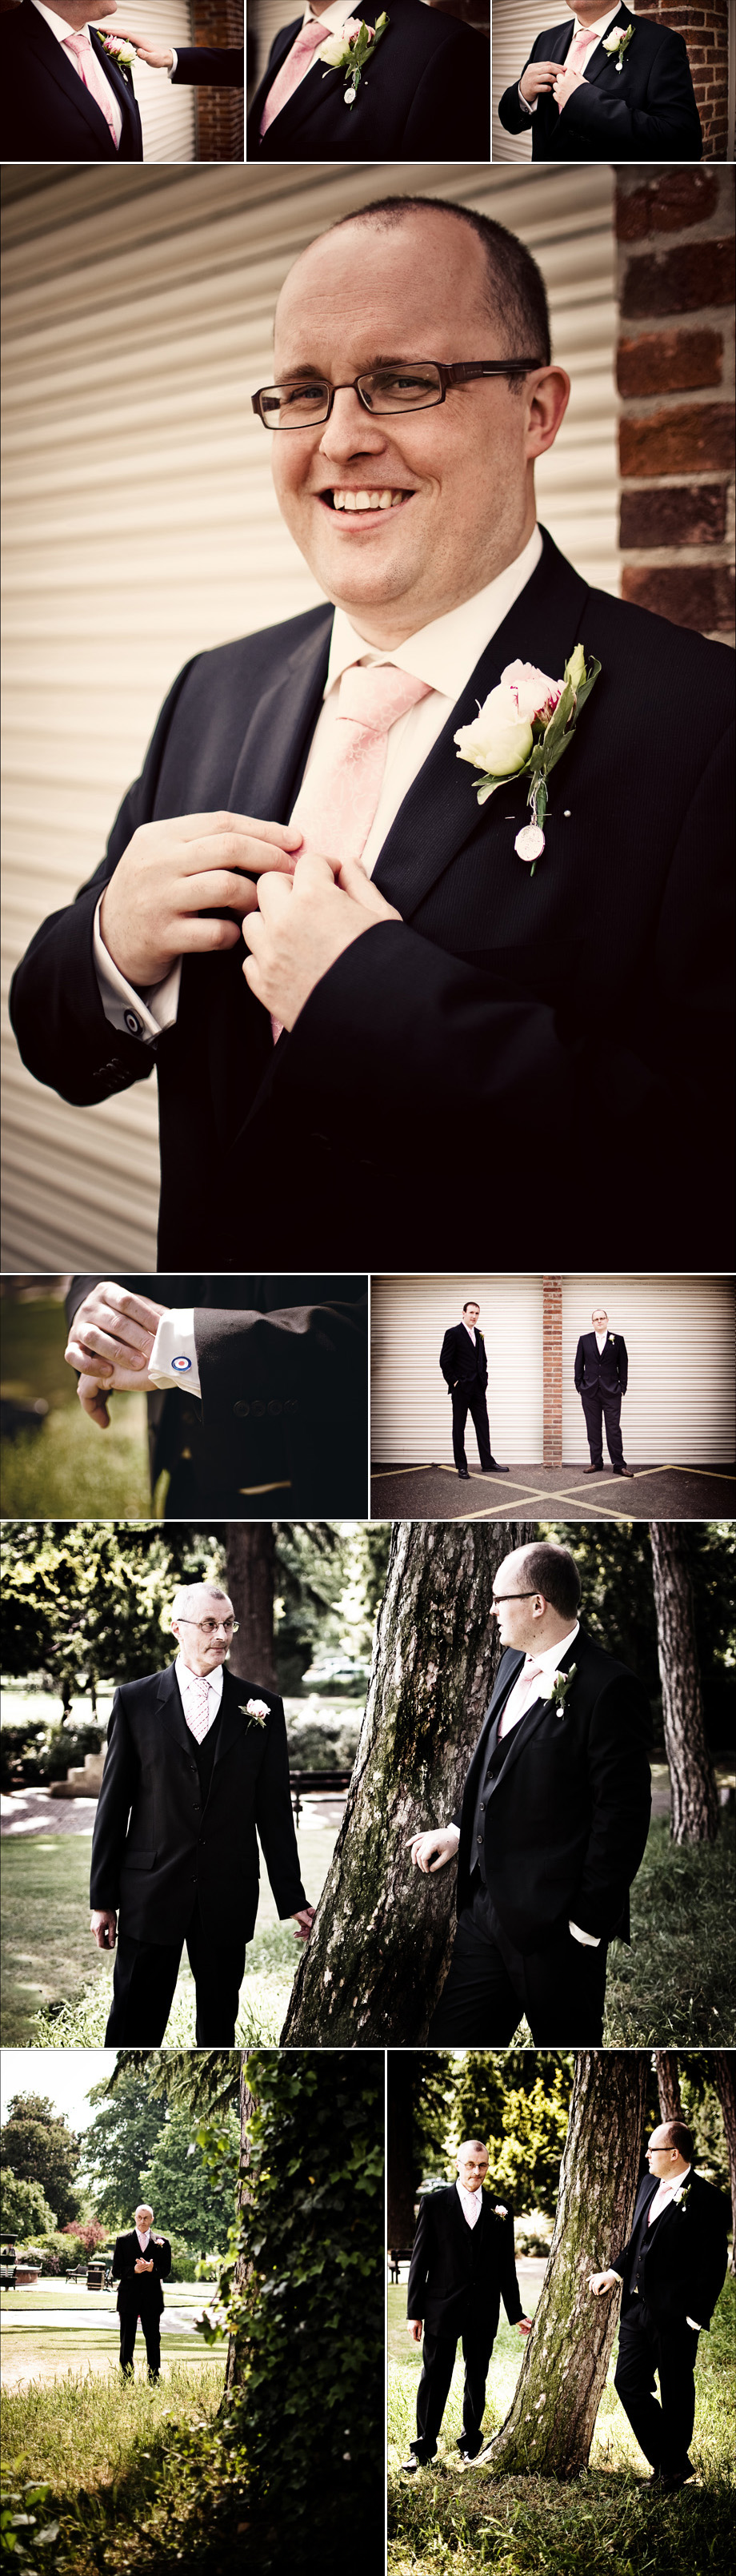 Photos of groom from wedding